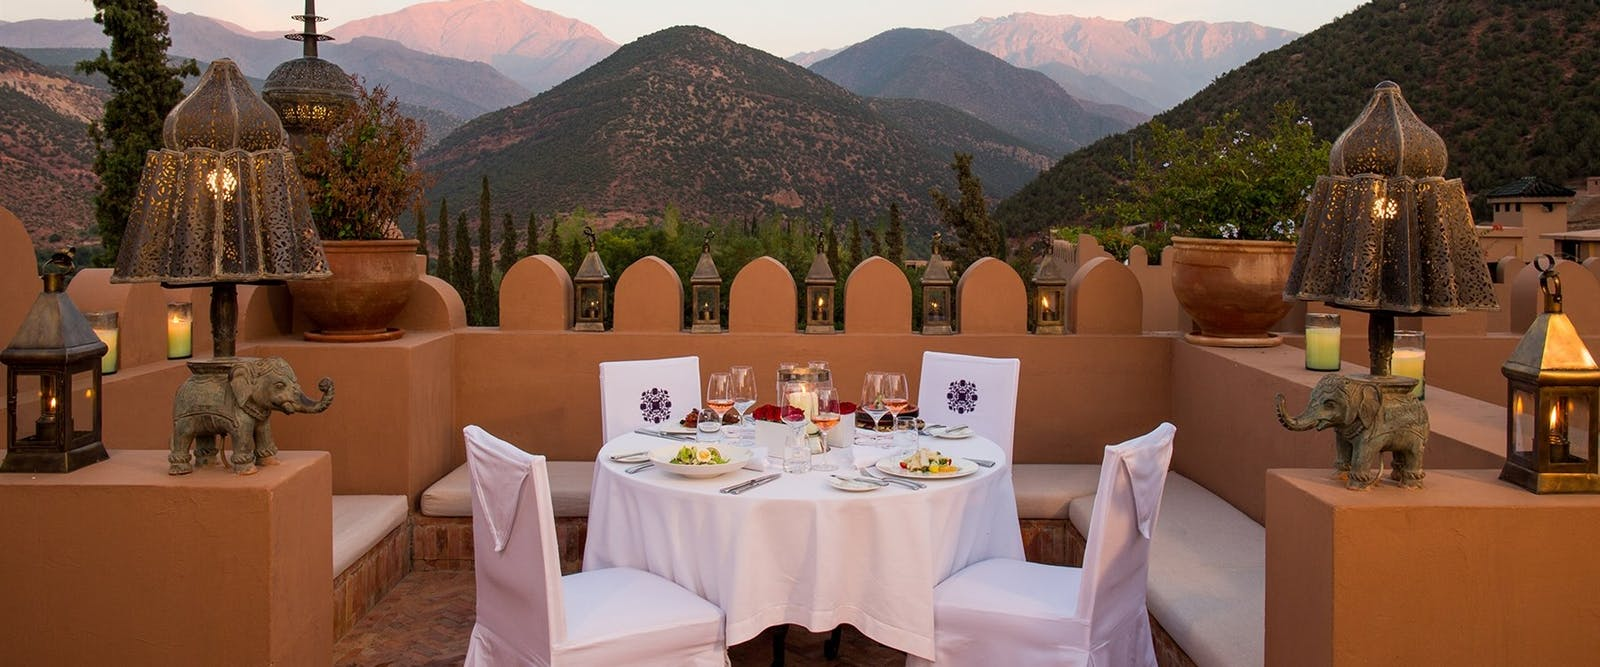 Dinner on Roof Terrace at Kasbah Tamadot, Marrakech, Morocco